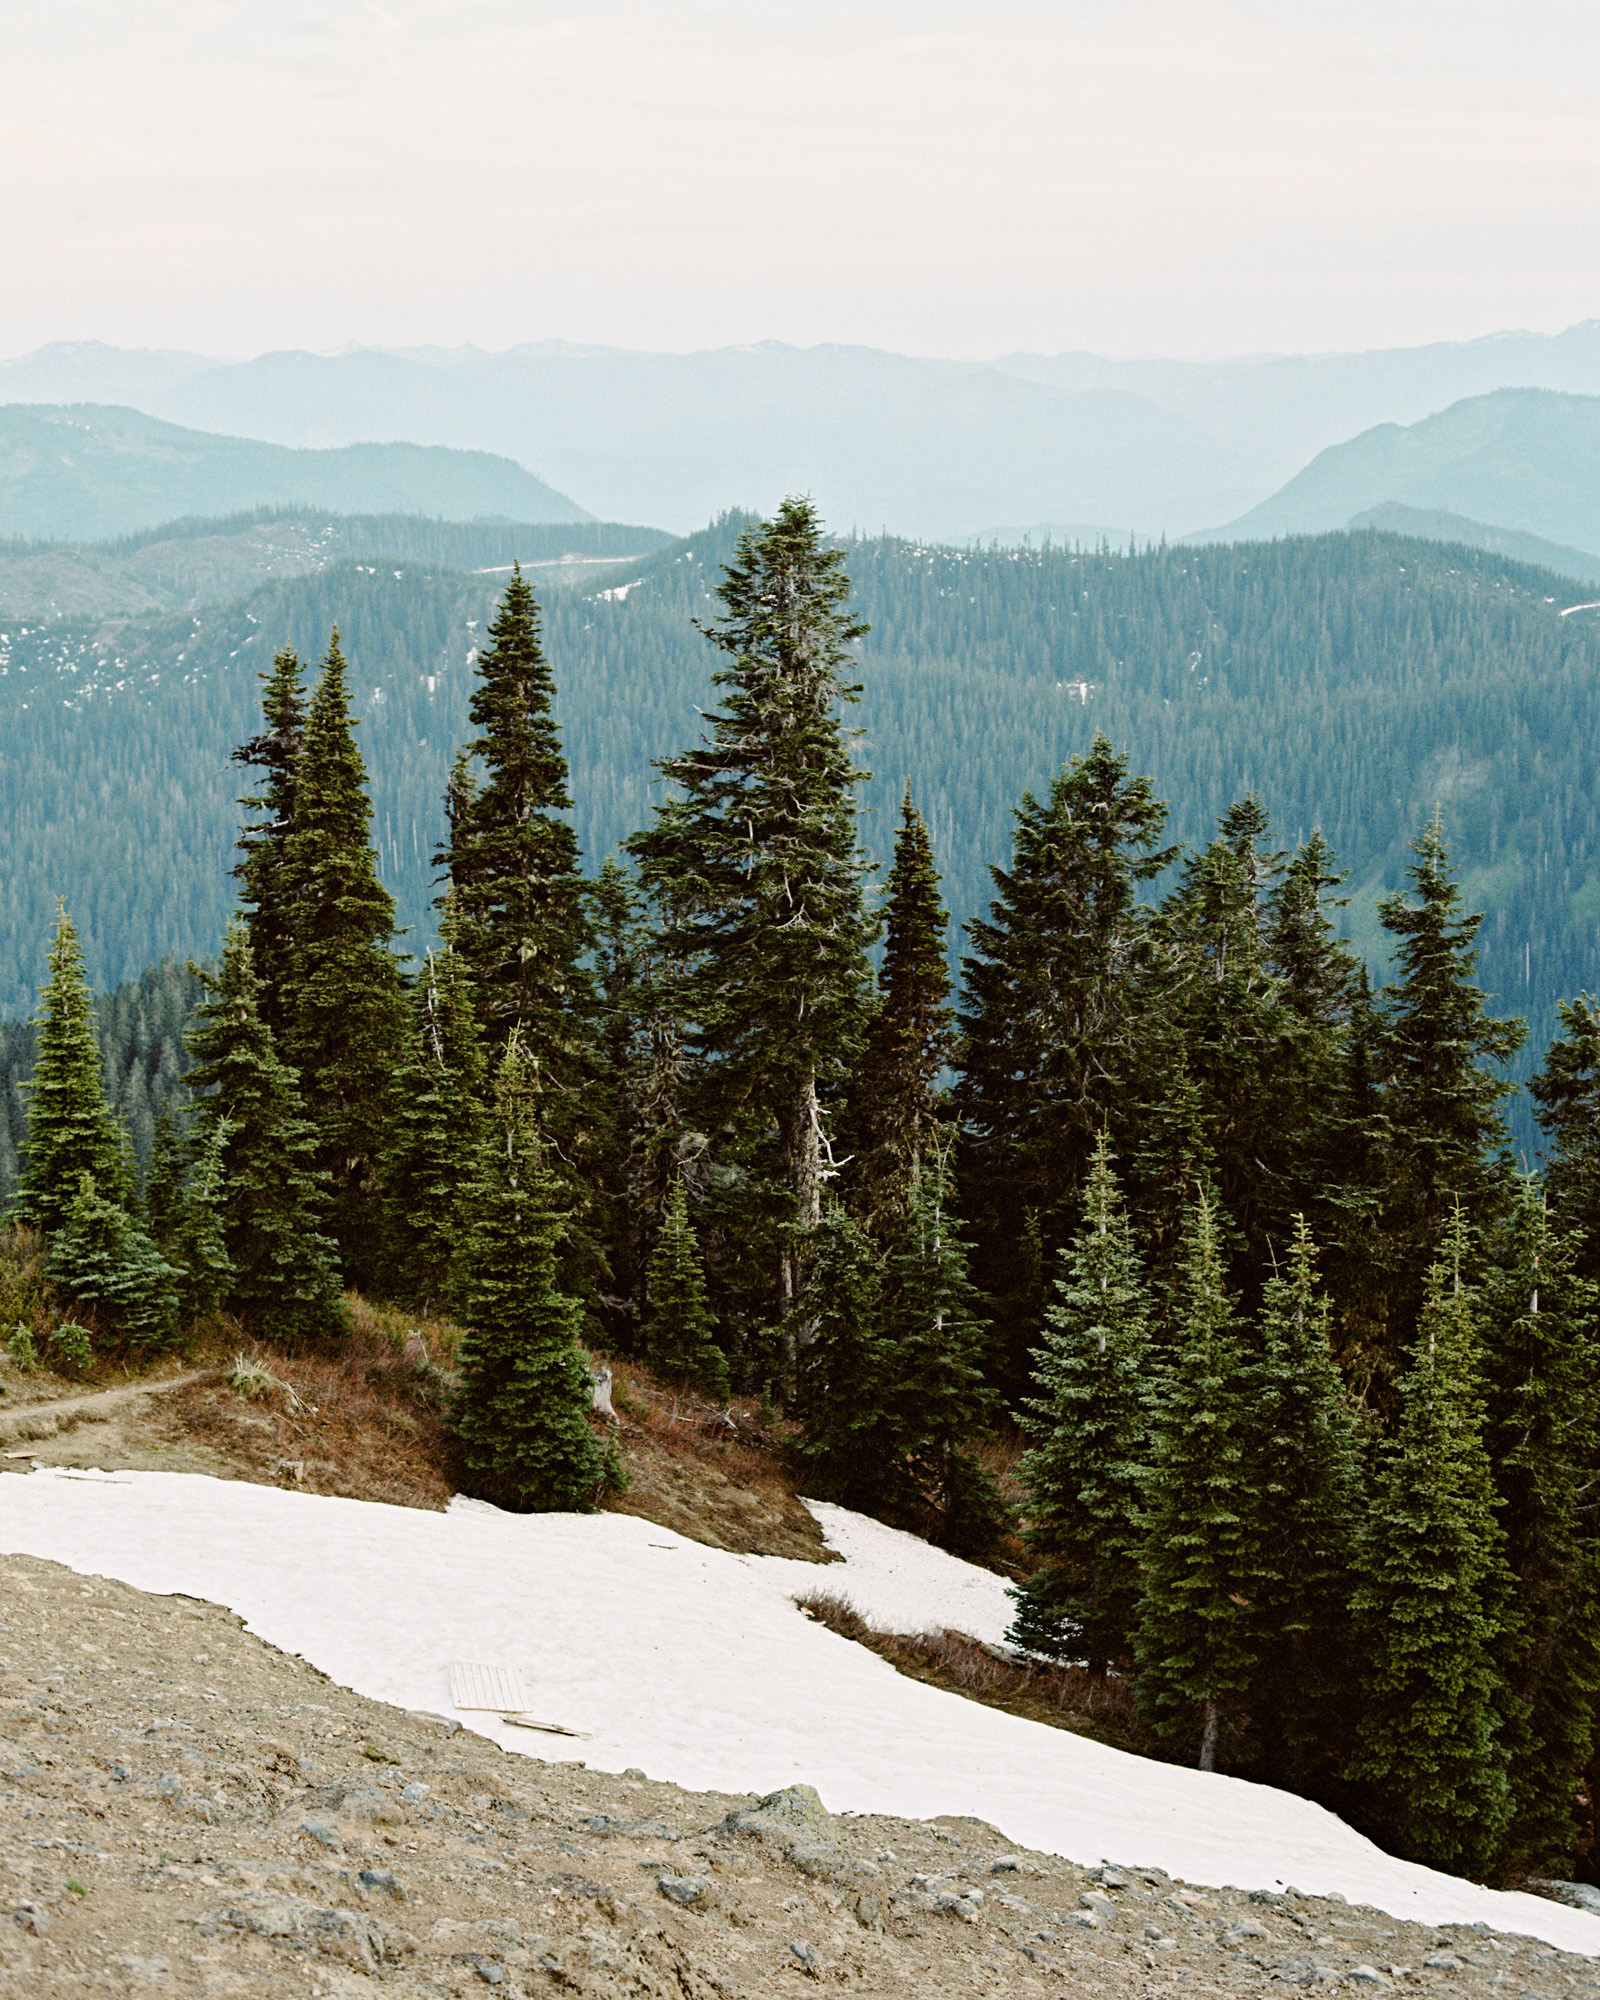 katelynnethan-blog-21 MOUNT RAINIER LOOKOUT ELOPEMENT